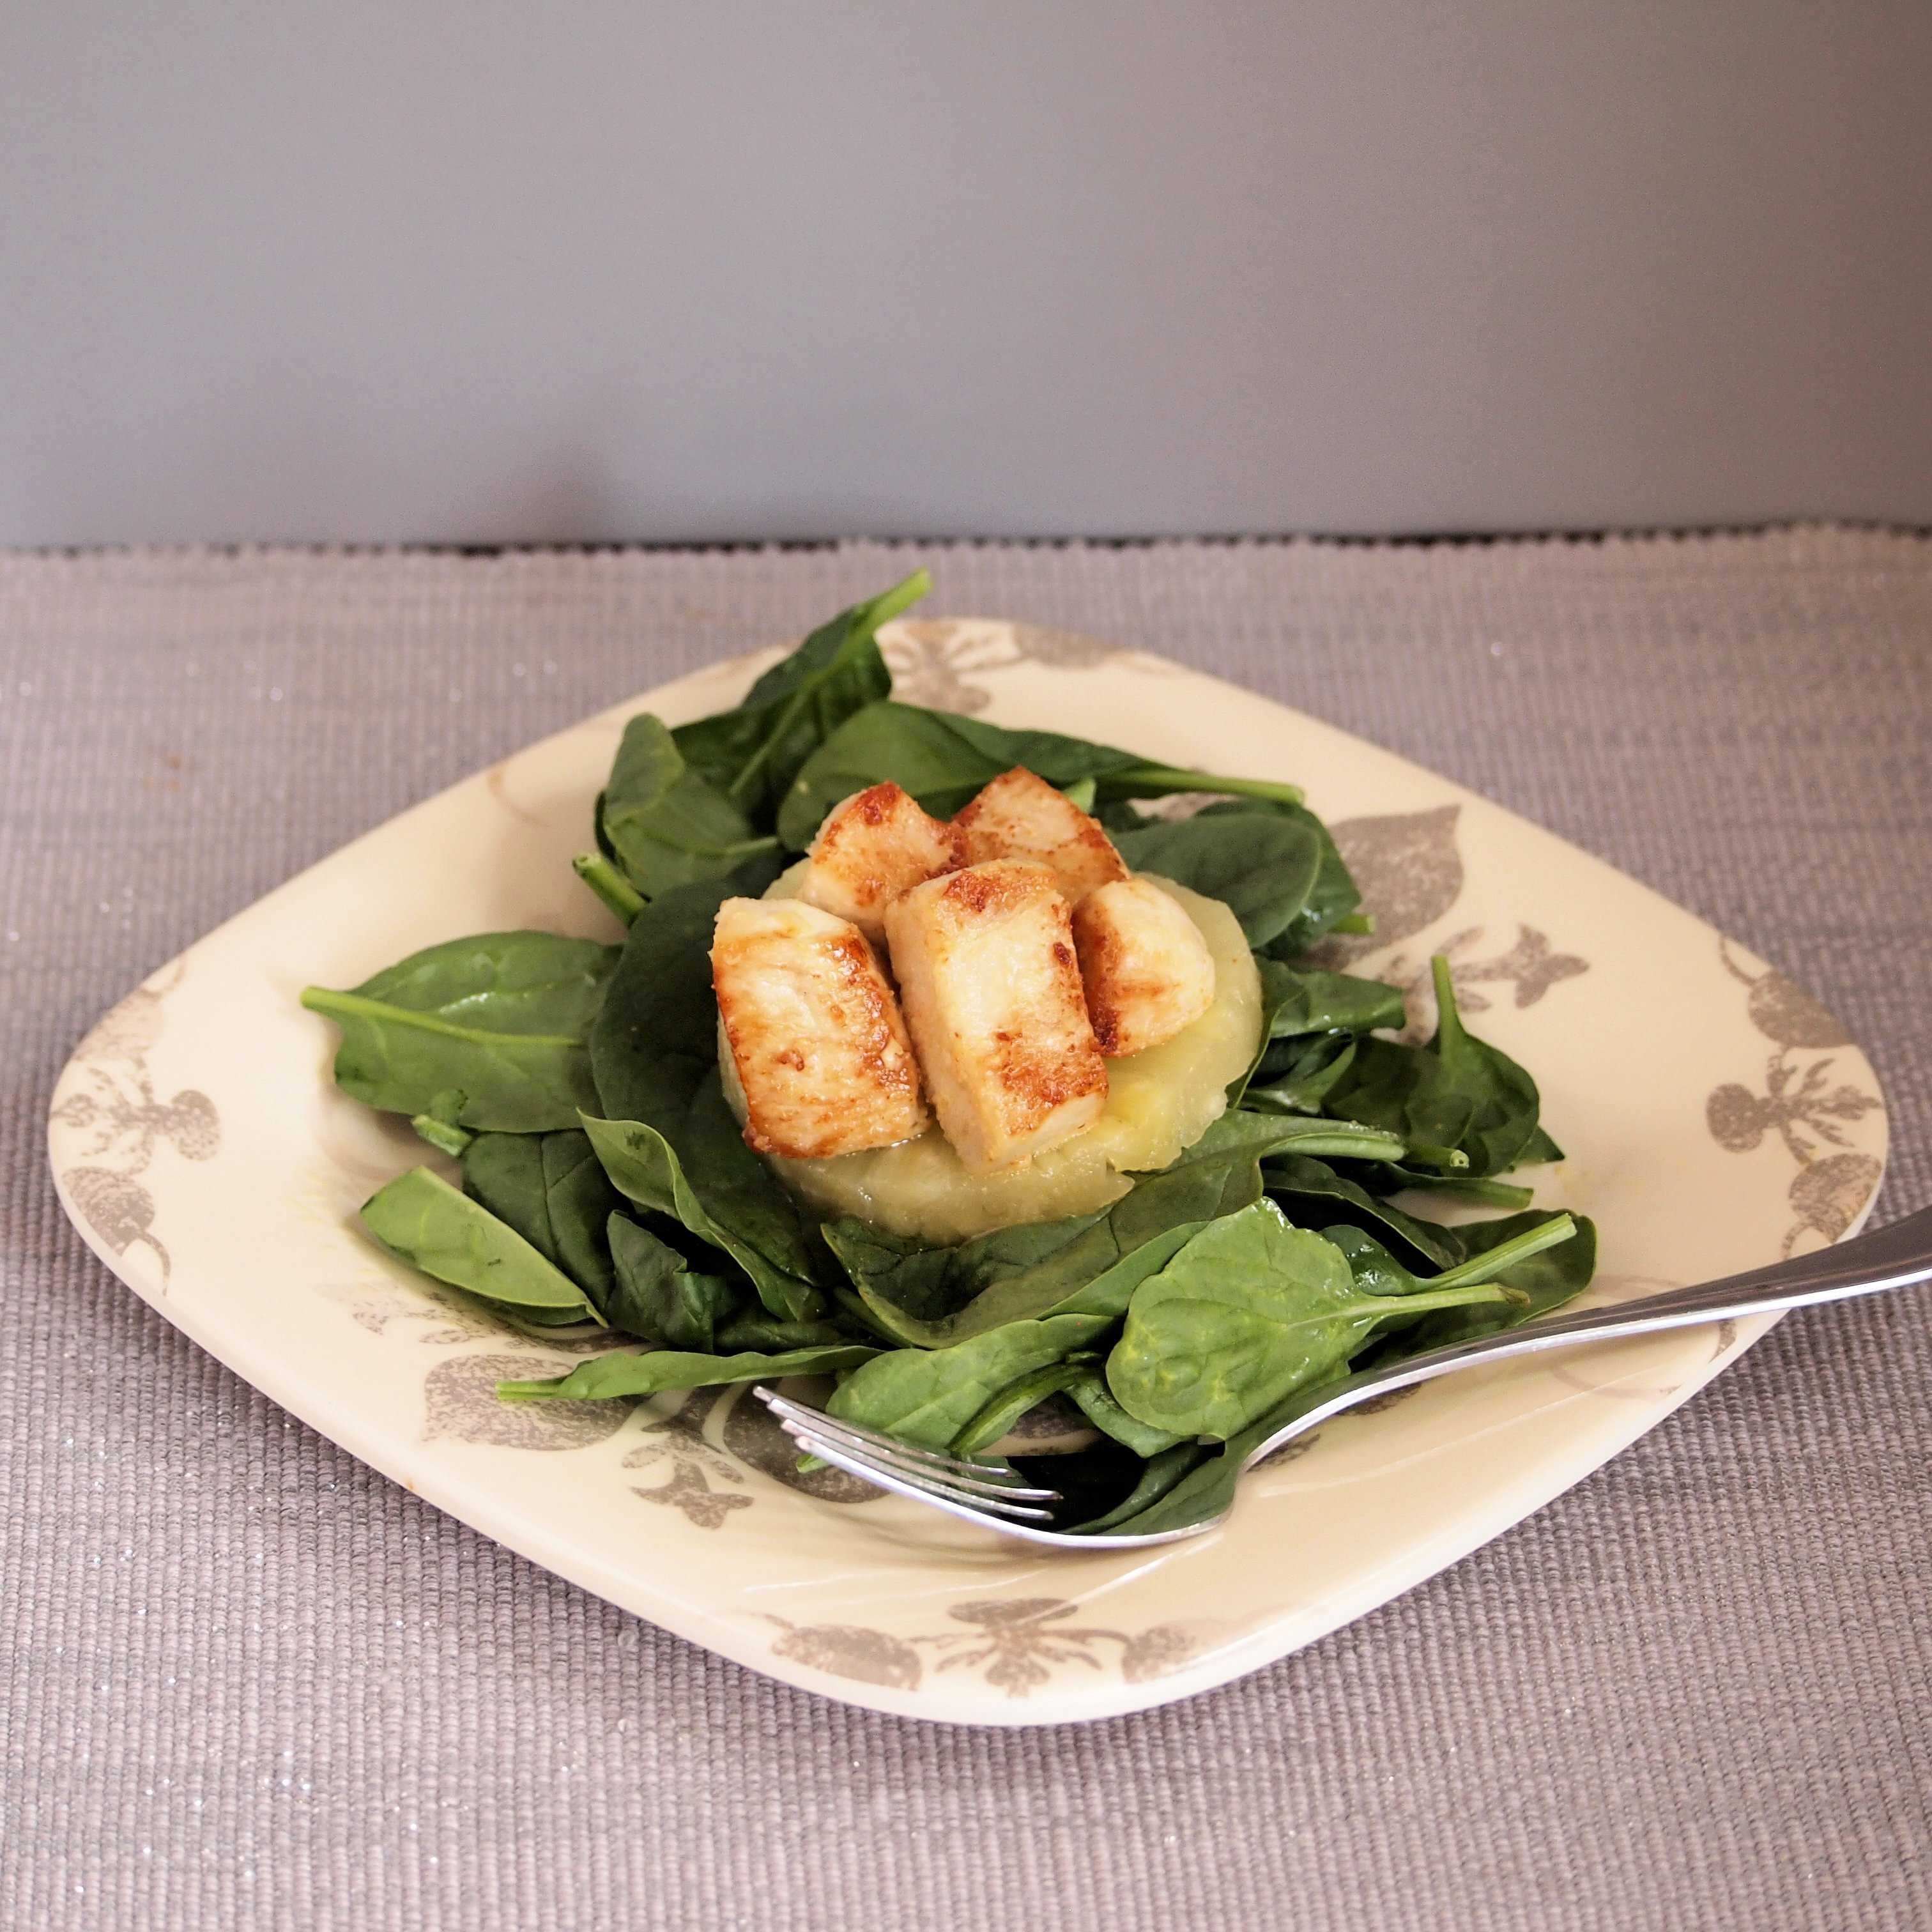 Spinach Salad with Chicken and Pineapple